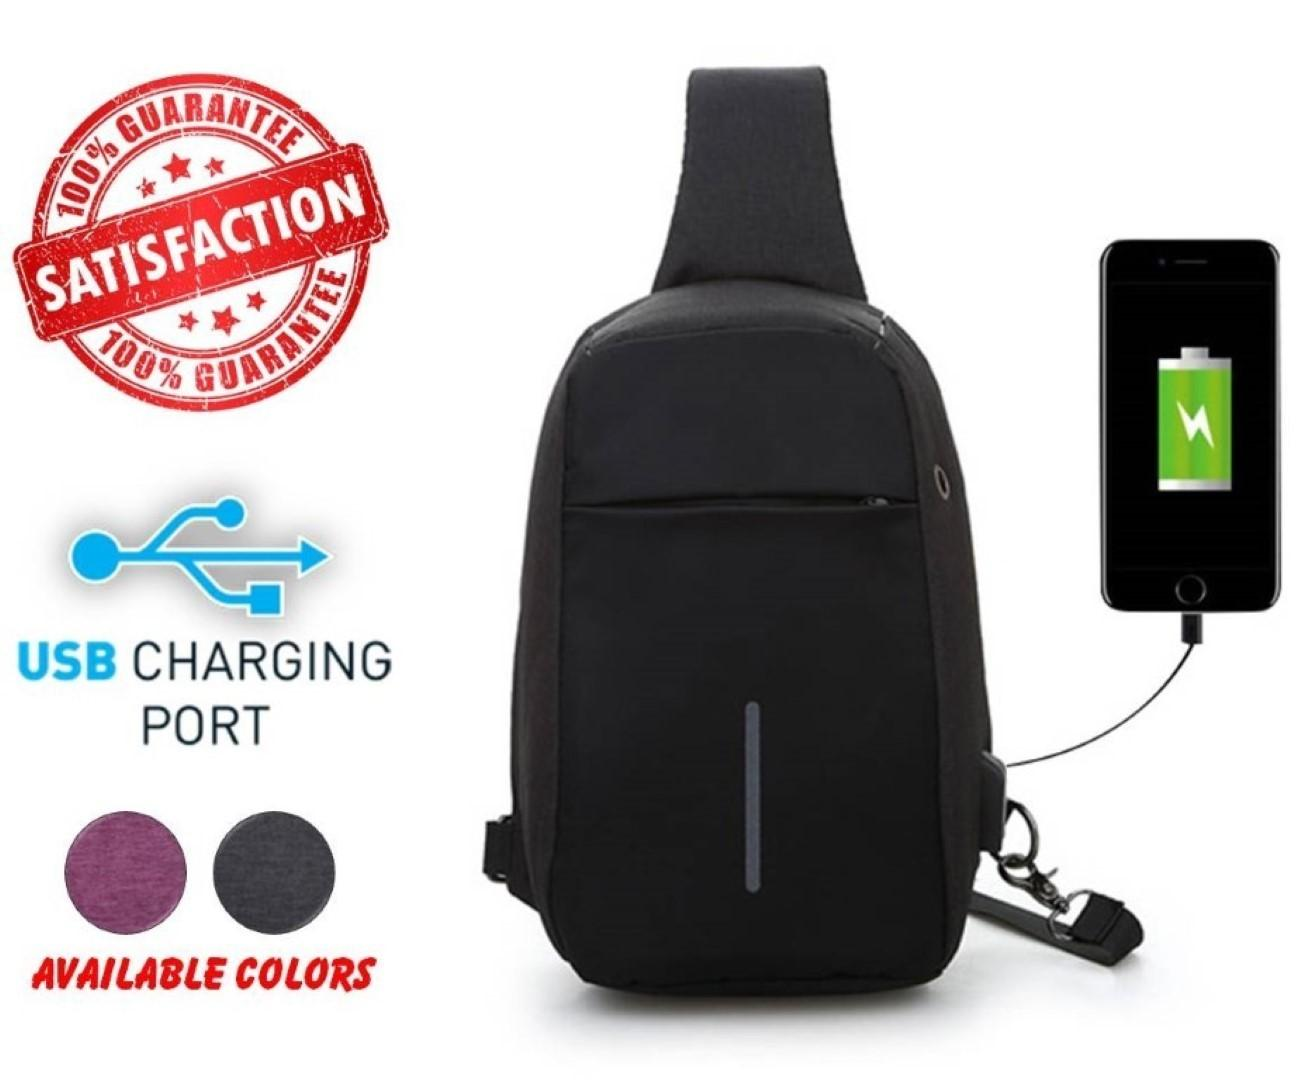 f5a12426bd Anti Theft Bag - Anti-Theft Shoulder Bag Travel Small Backpack with USB  Charging Crossbody